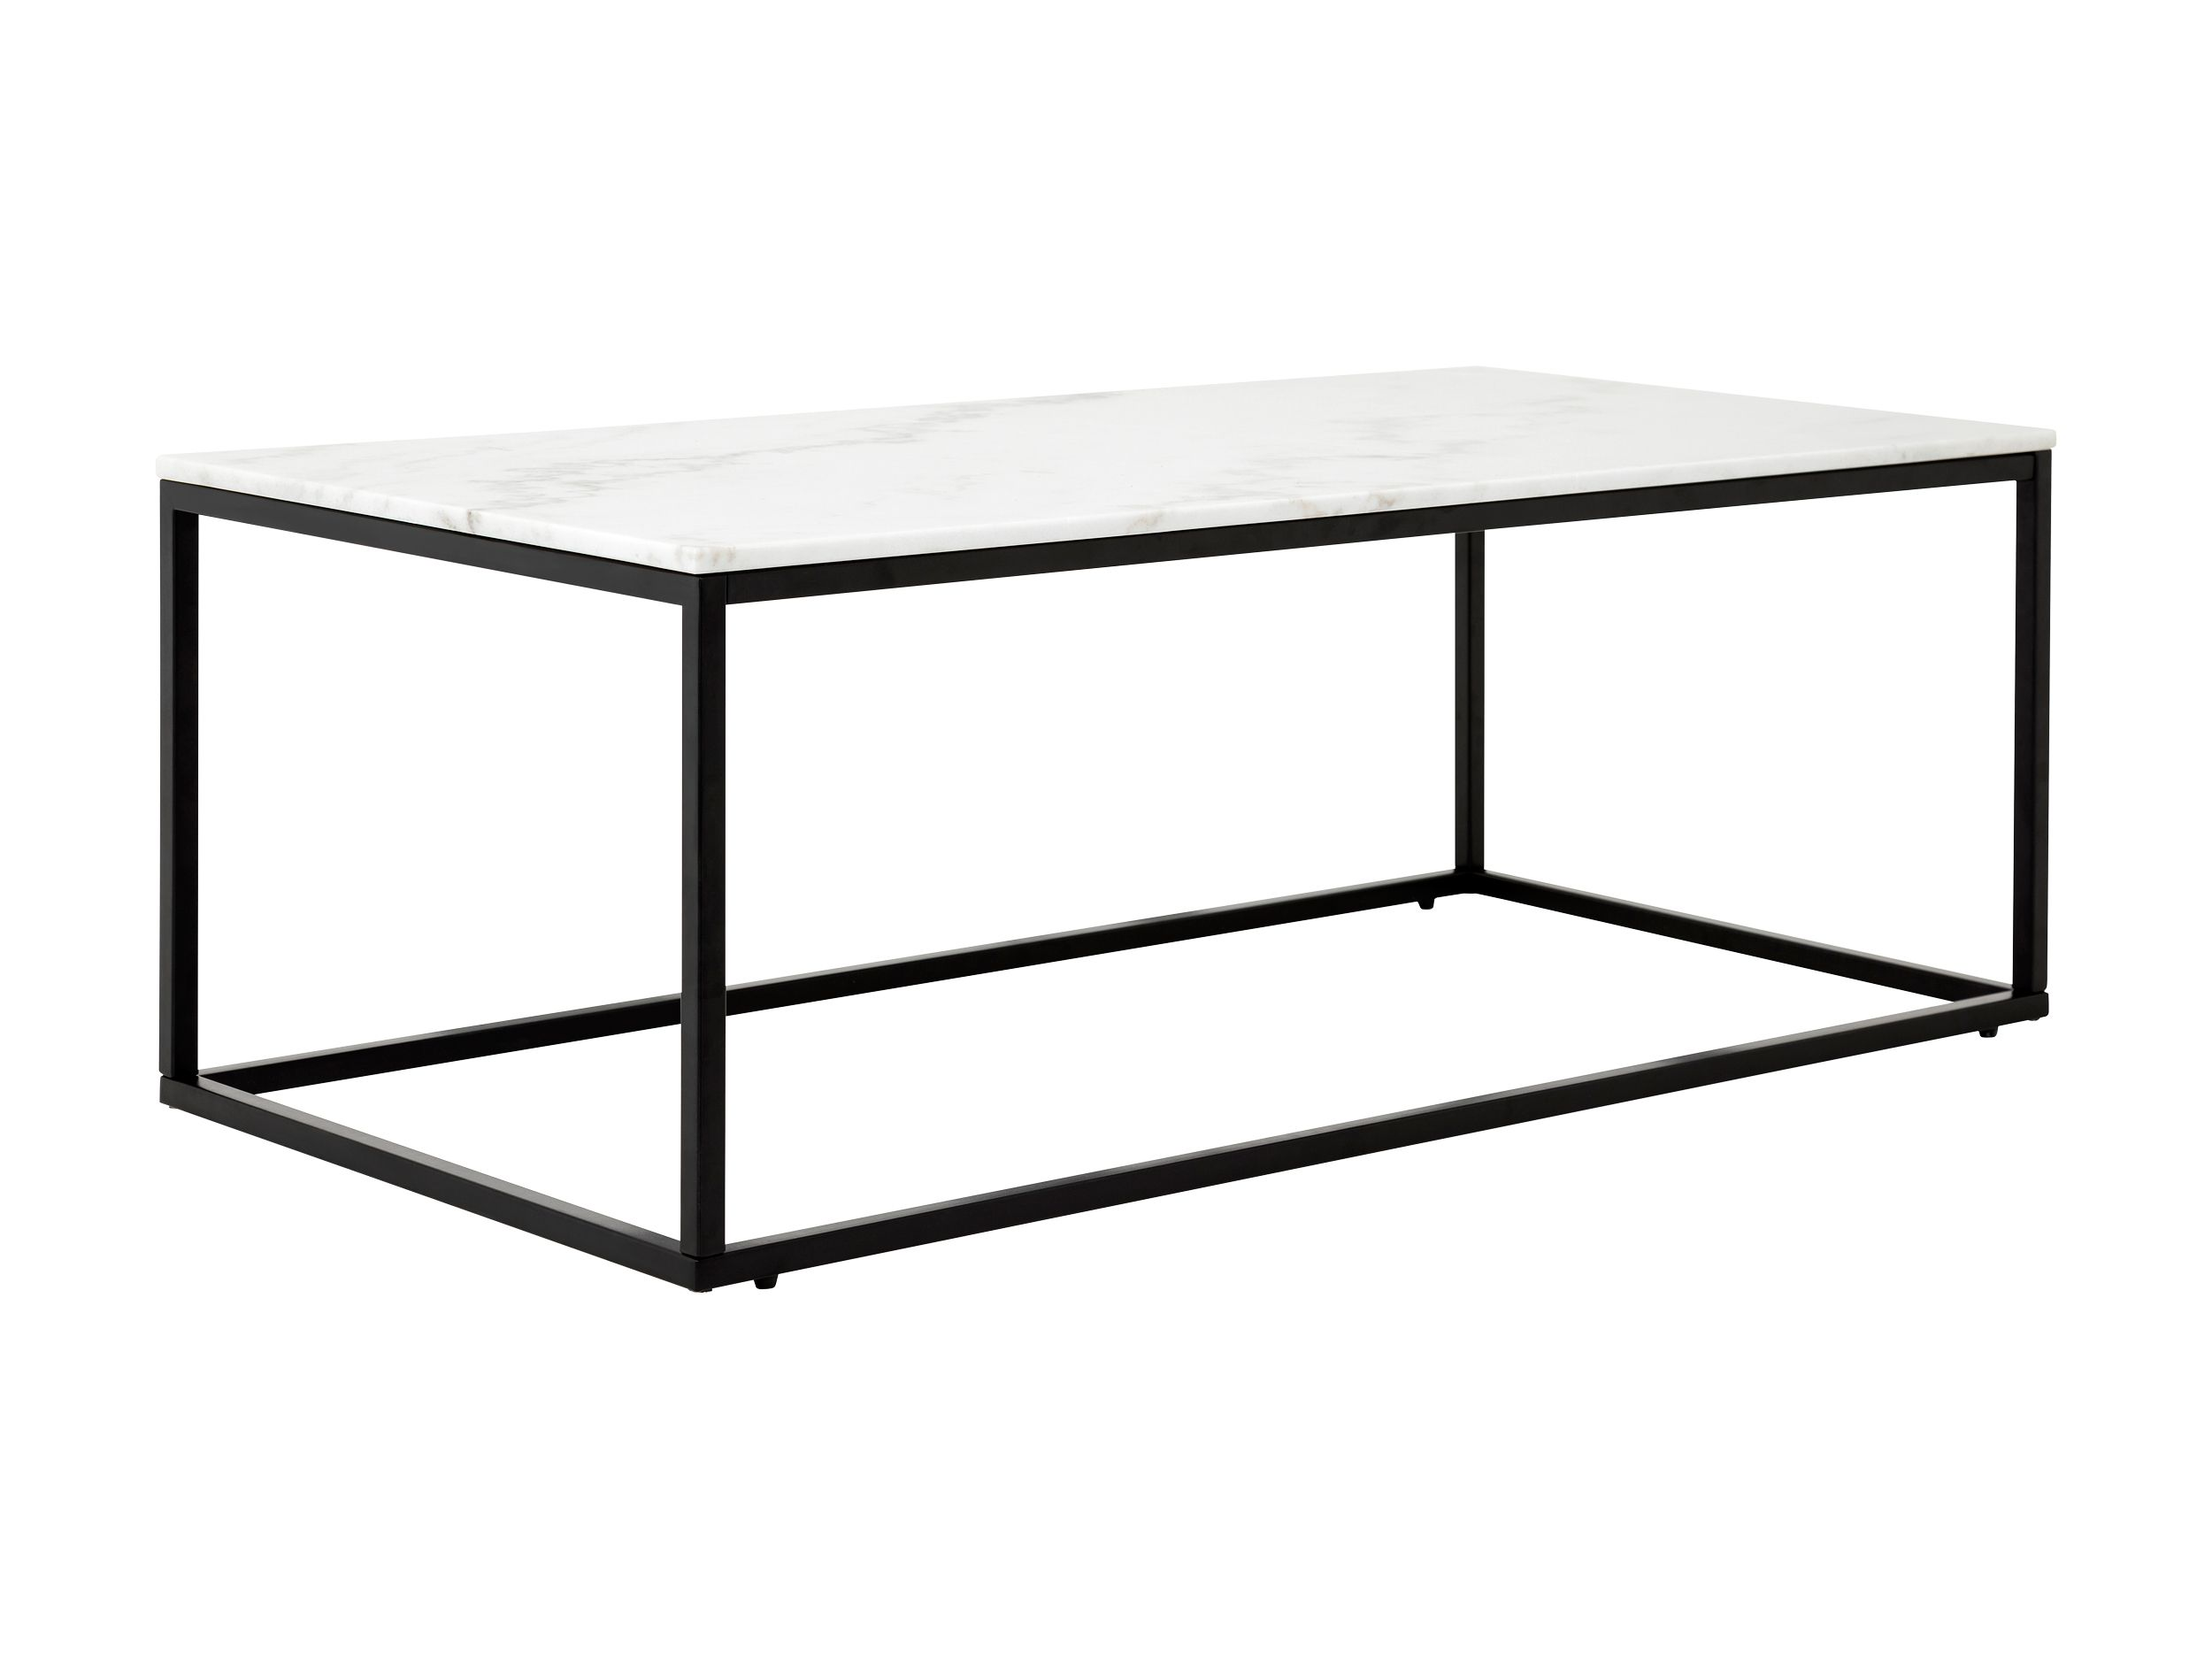 Slim Irony Couchtisch Carrie Soffbord 120 Marmor Grå Svart Bord Table Elegant Table